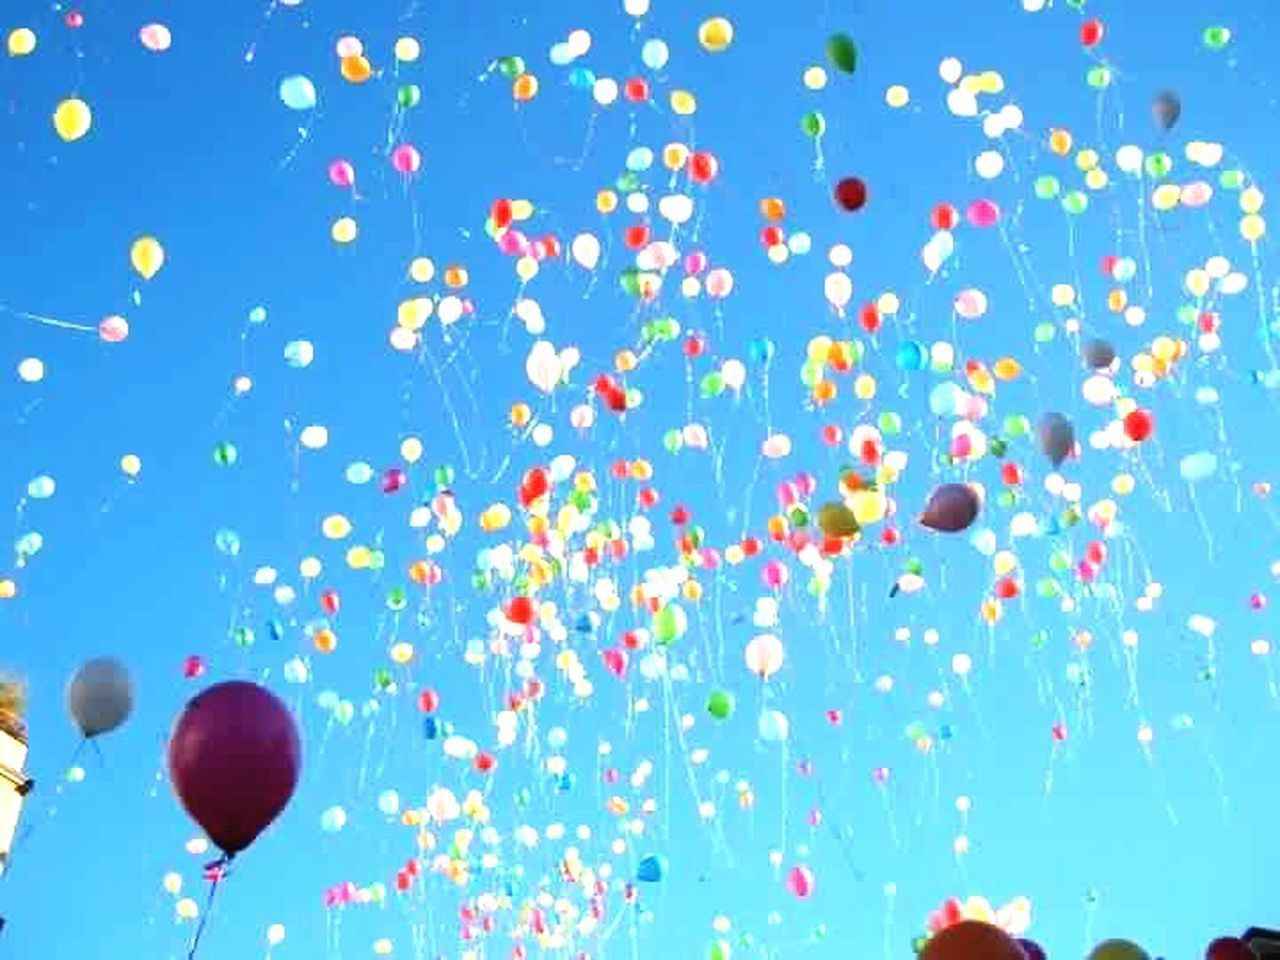 balloon, celebration, party - social event, multi colored, celebration event, mid-air, helium balloon, blue, helium, birthday, holiday - event, red, confetti, event, backgrounds, traditional festival, streamer, no people, ballooning festival, flying, hot air balloon, outdoors, sky, day